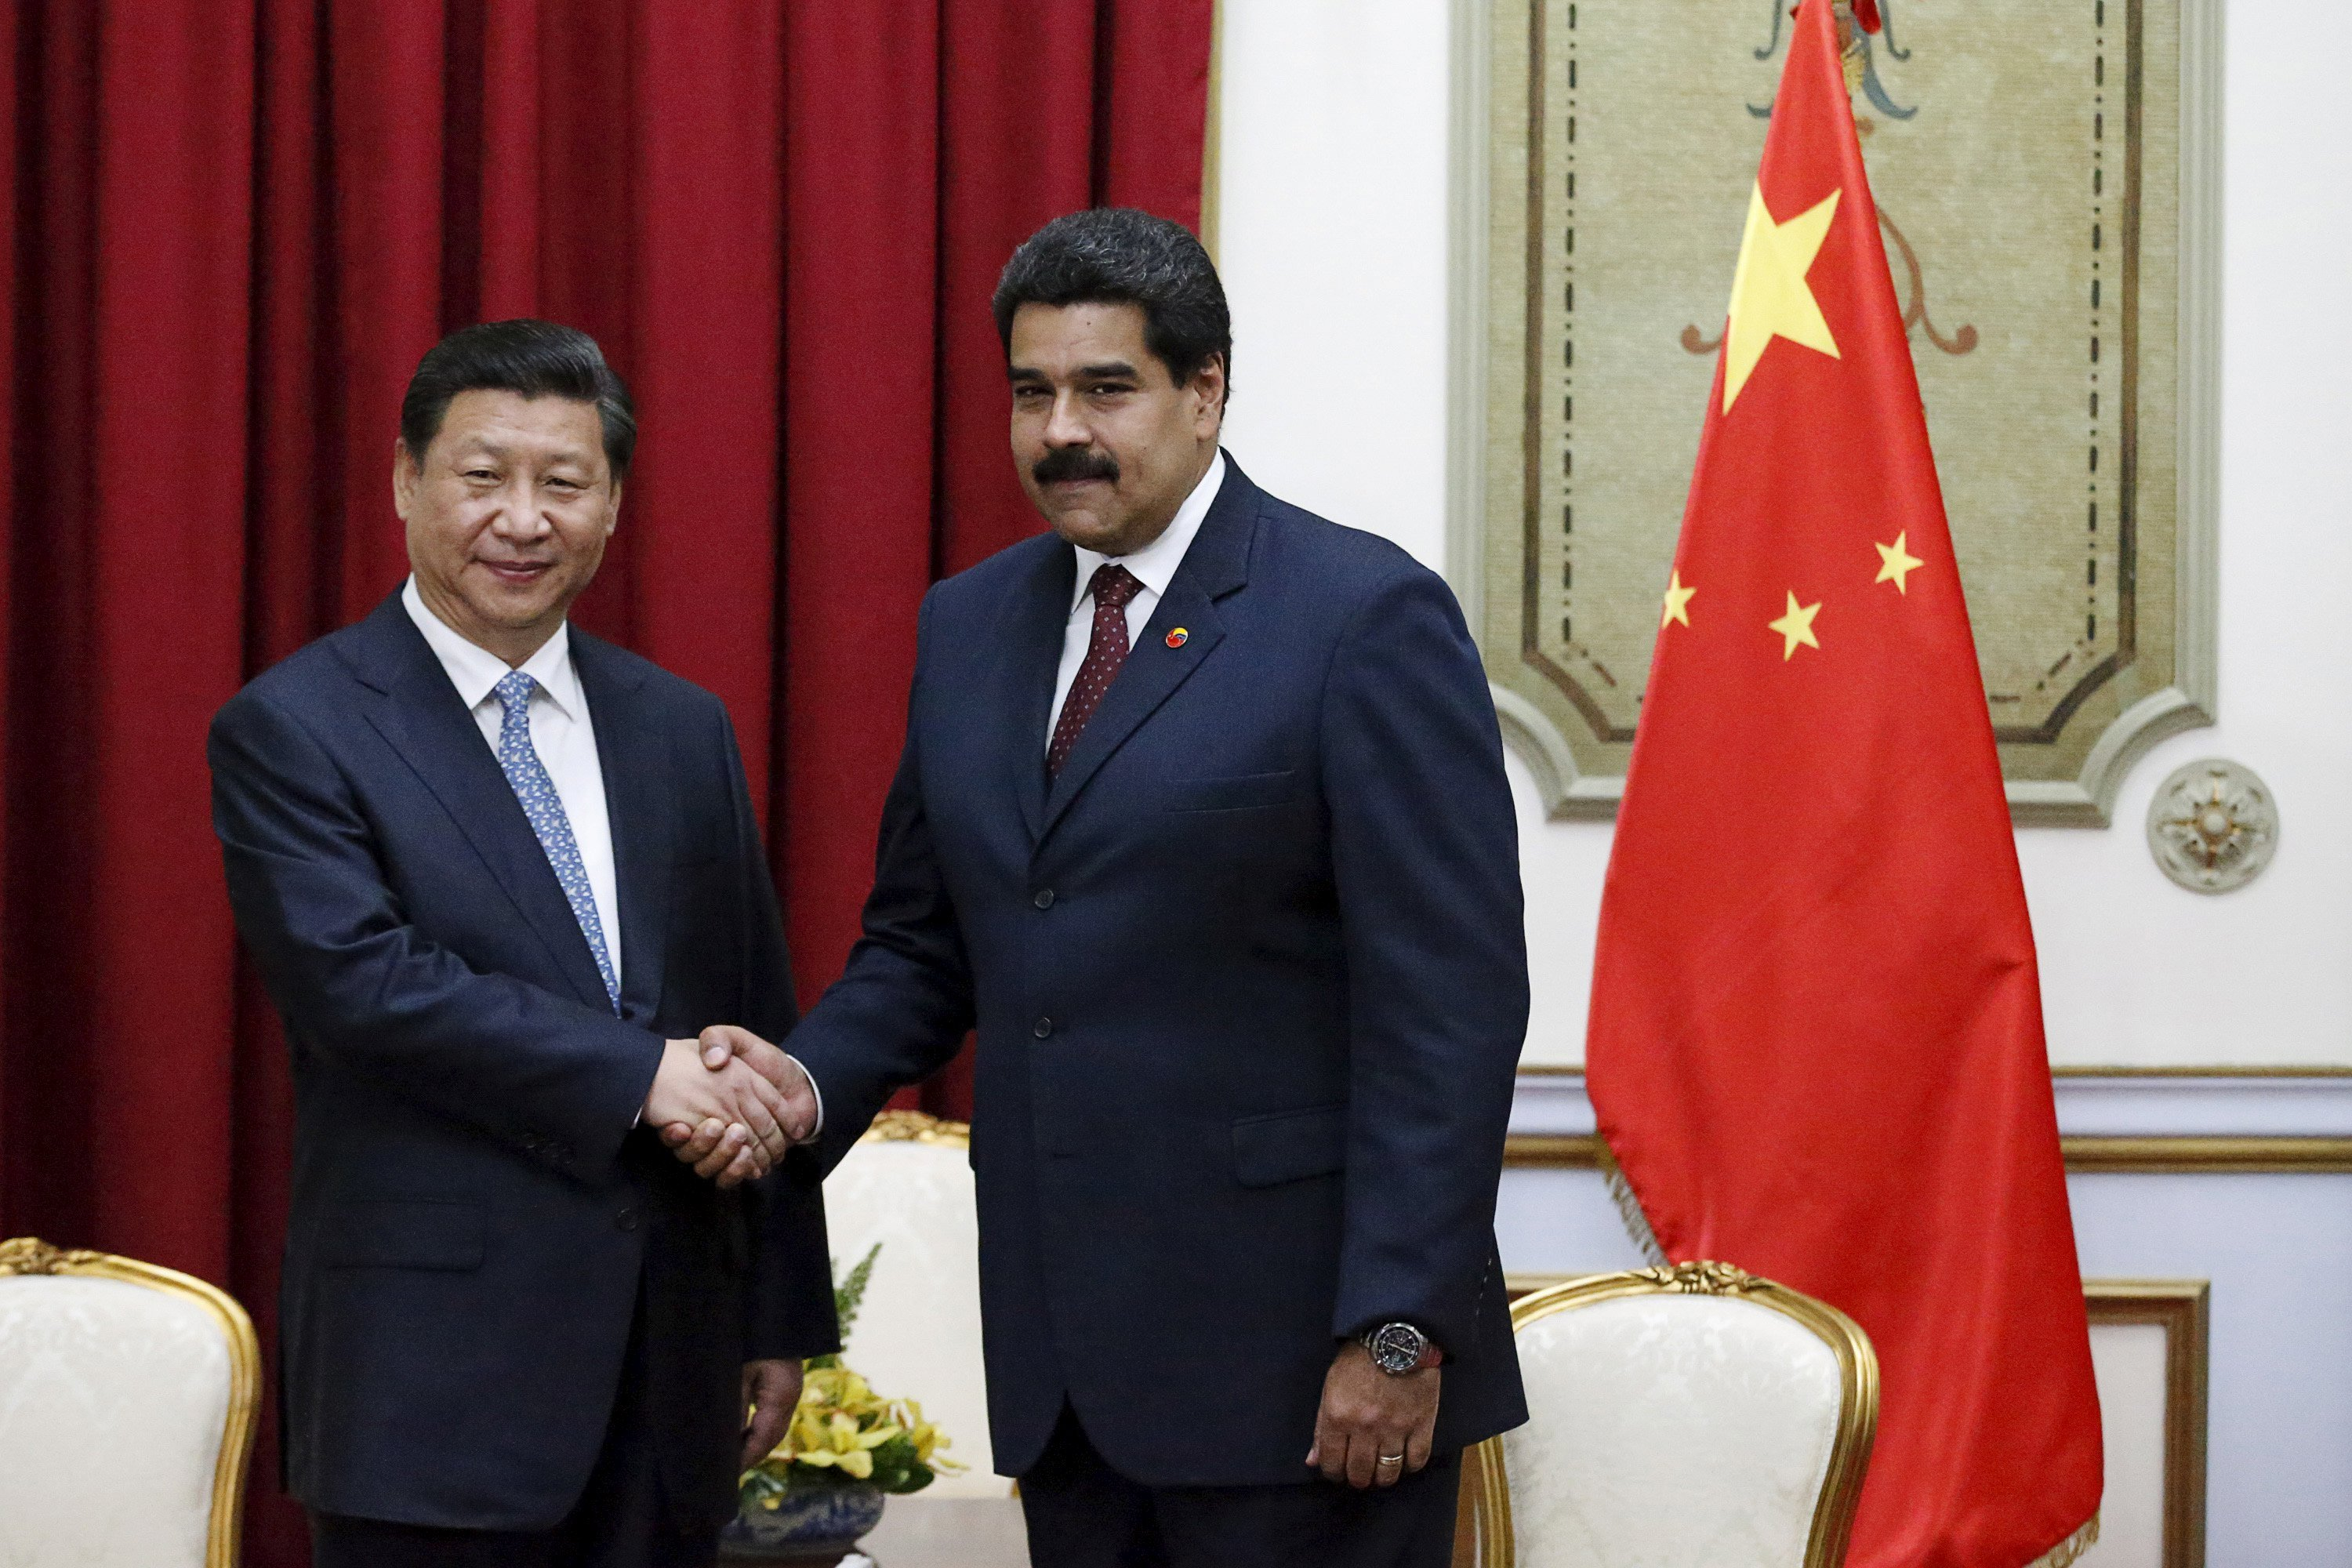 File photo of China's President Xi with Venezuela's President Maduro at a meeting in Miraflores Palace in Caracas